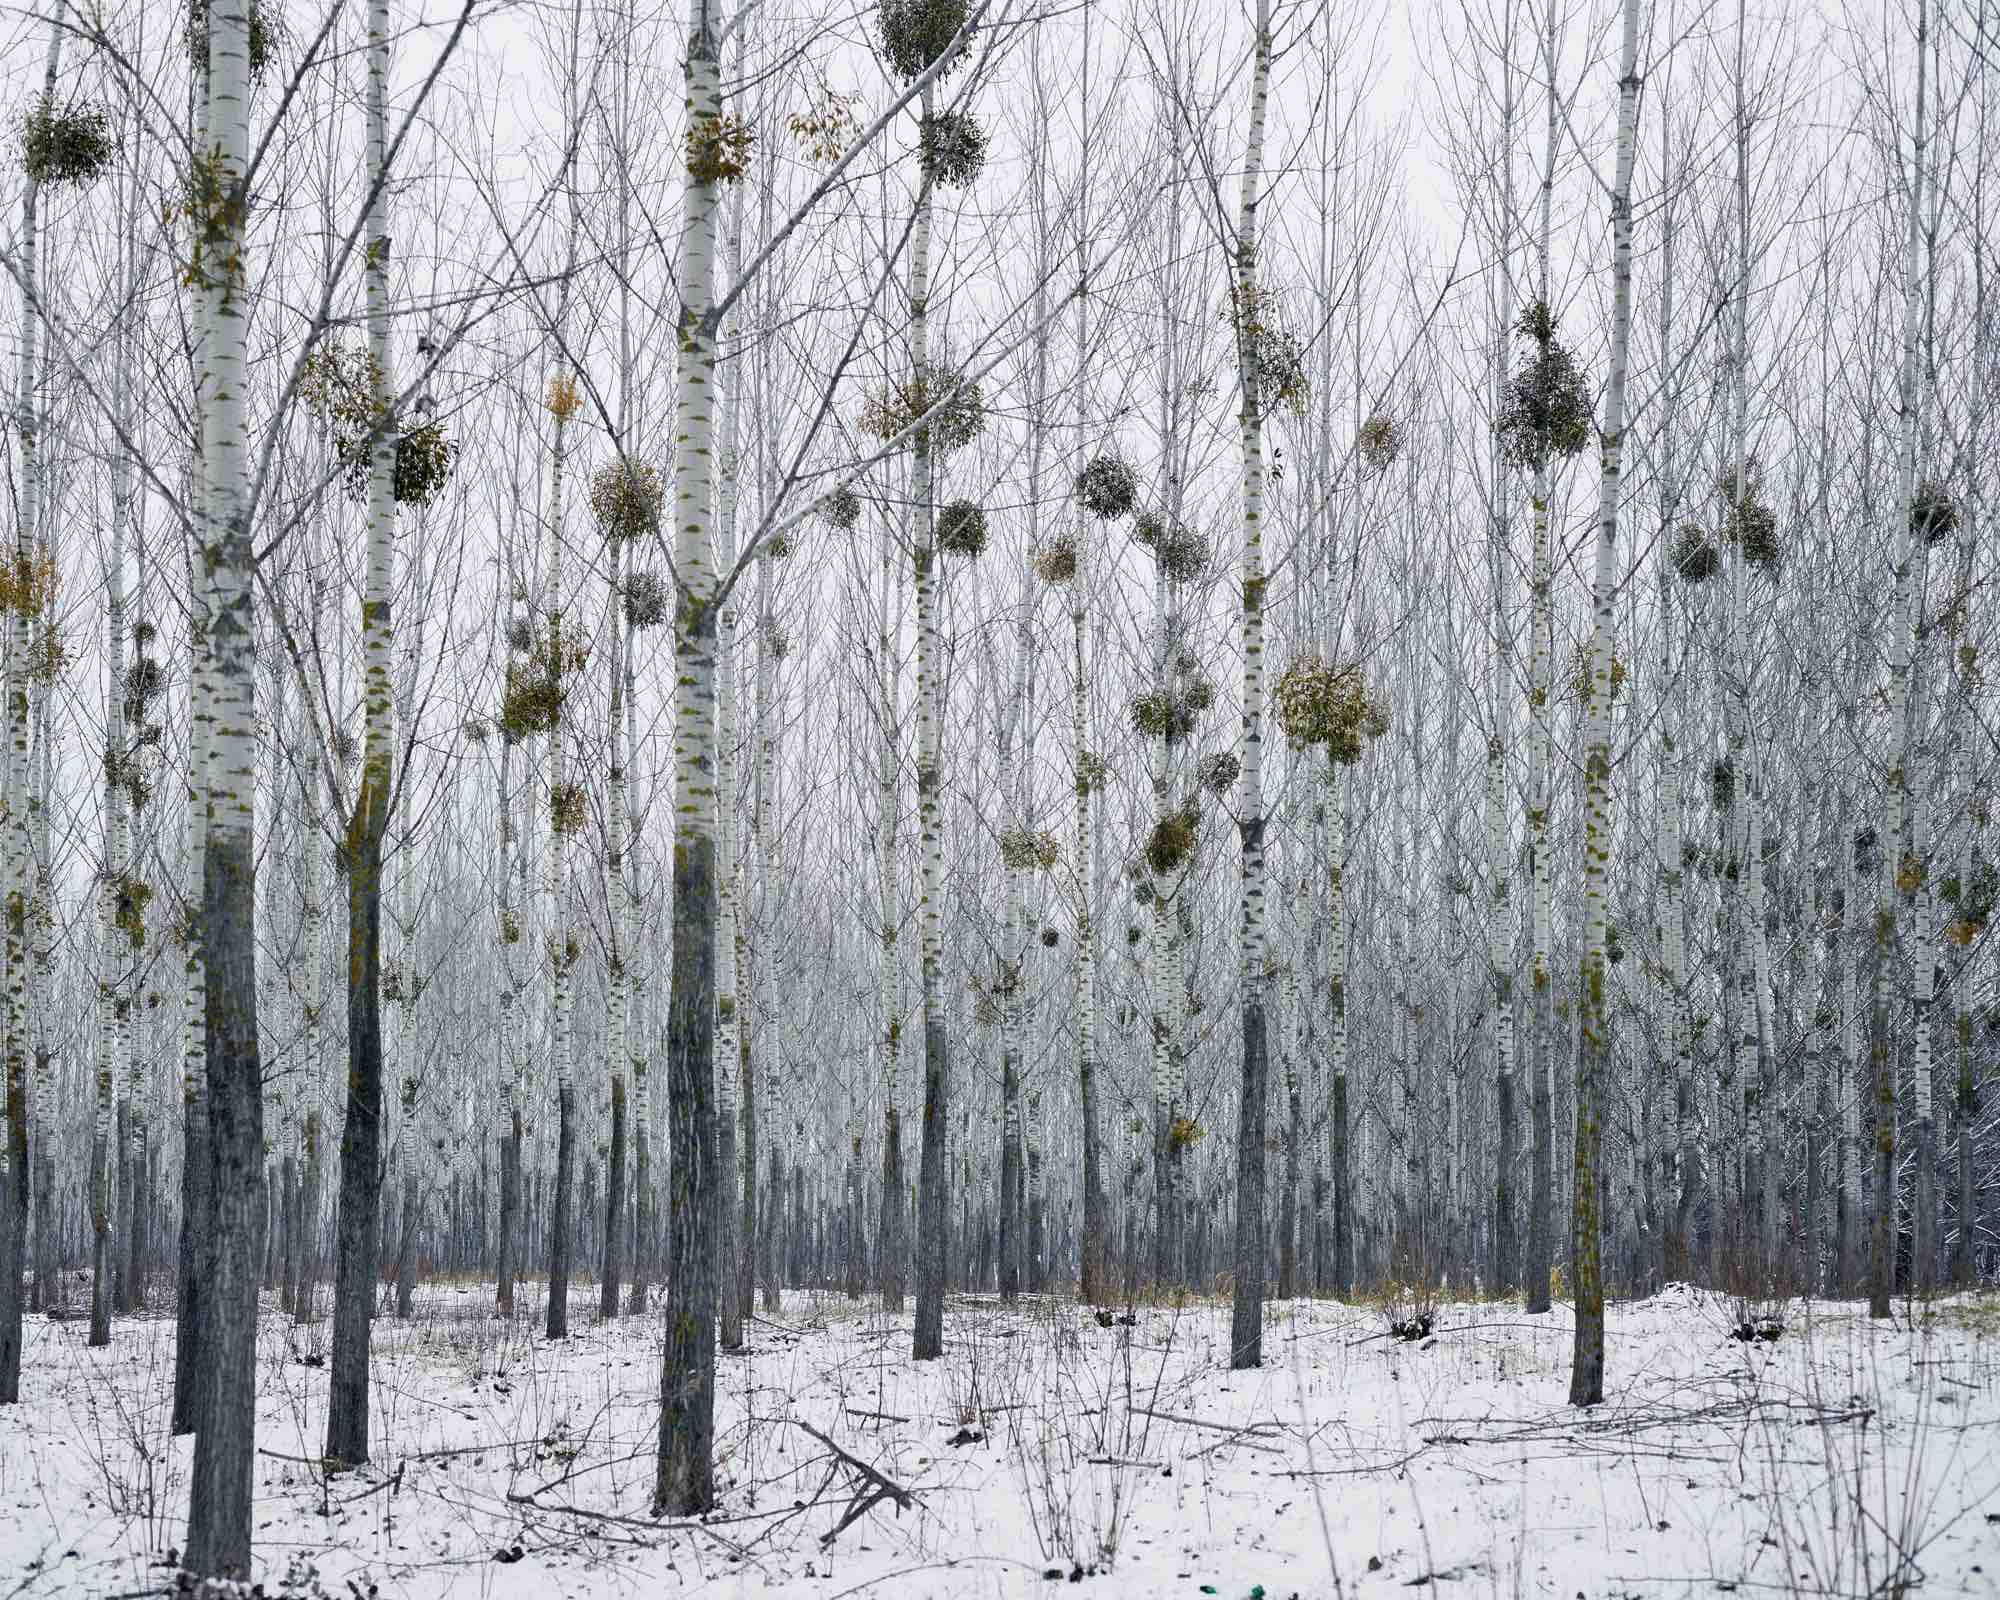 Forest With Mistletoe, West Romania, from the series Notes for an Epilogue, 2011-2015 © Tamas Dezso. Courtesy of The Photographers' Gallery.